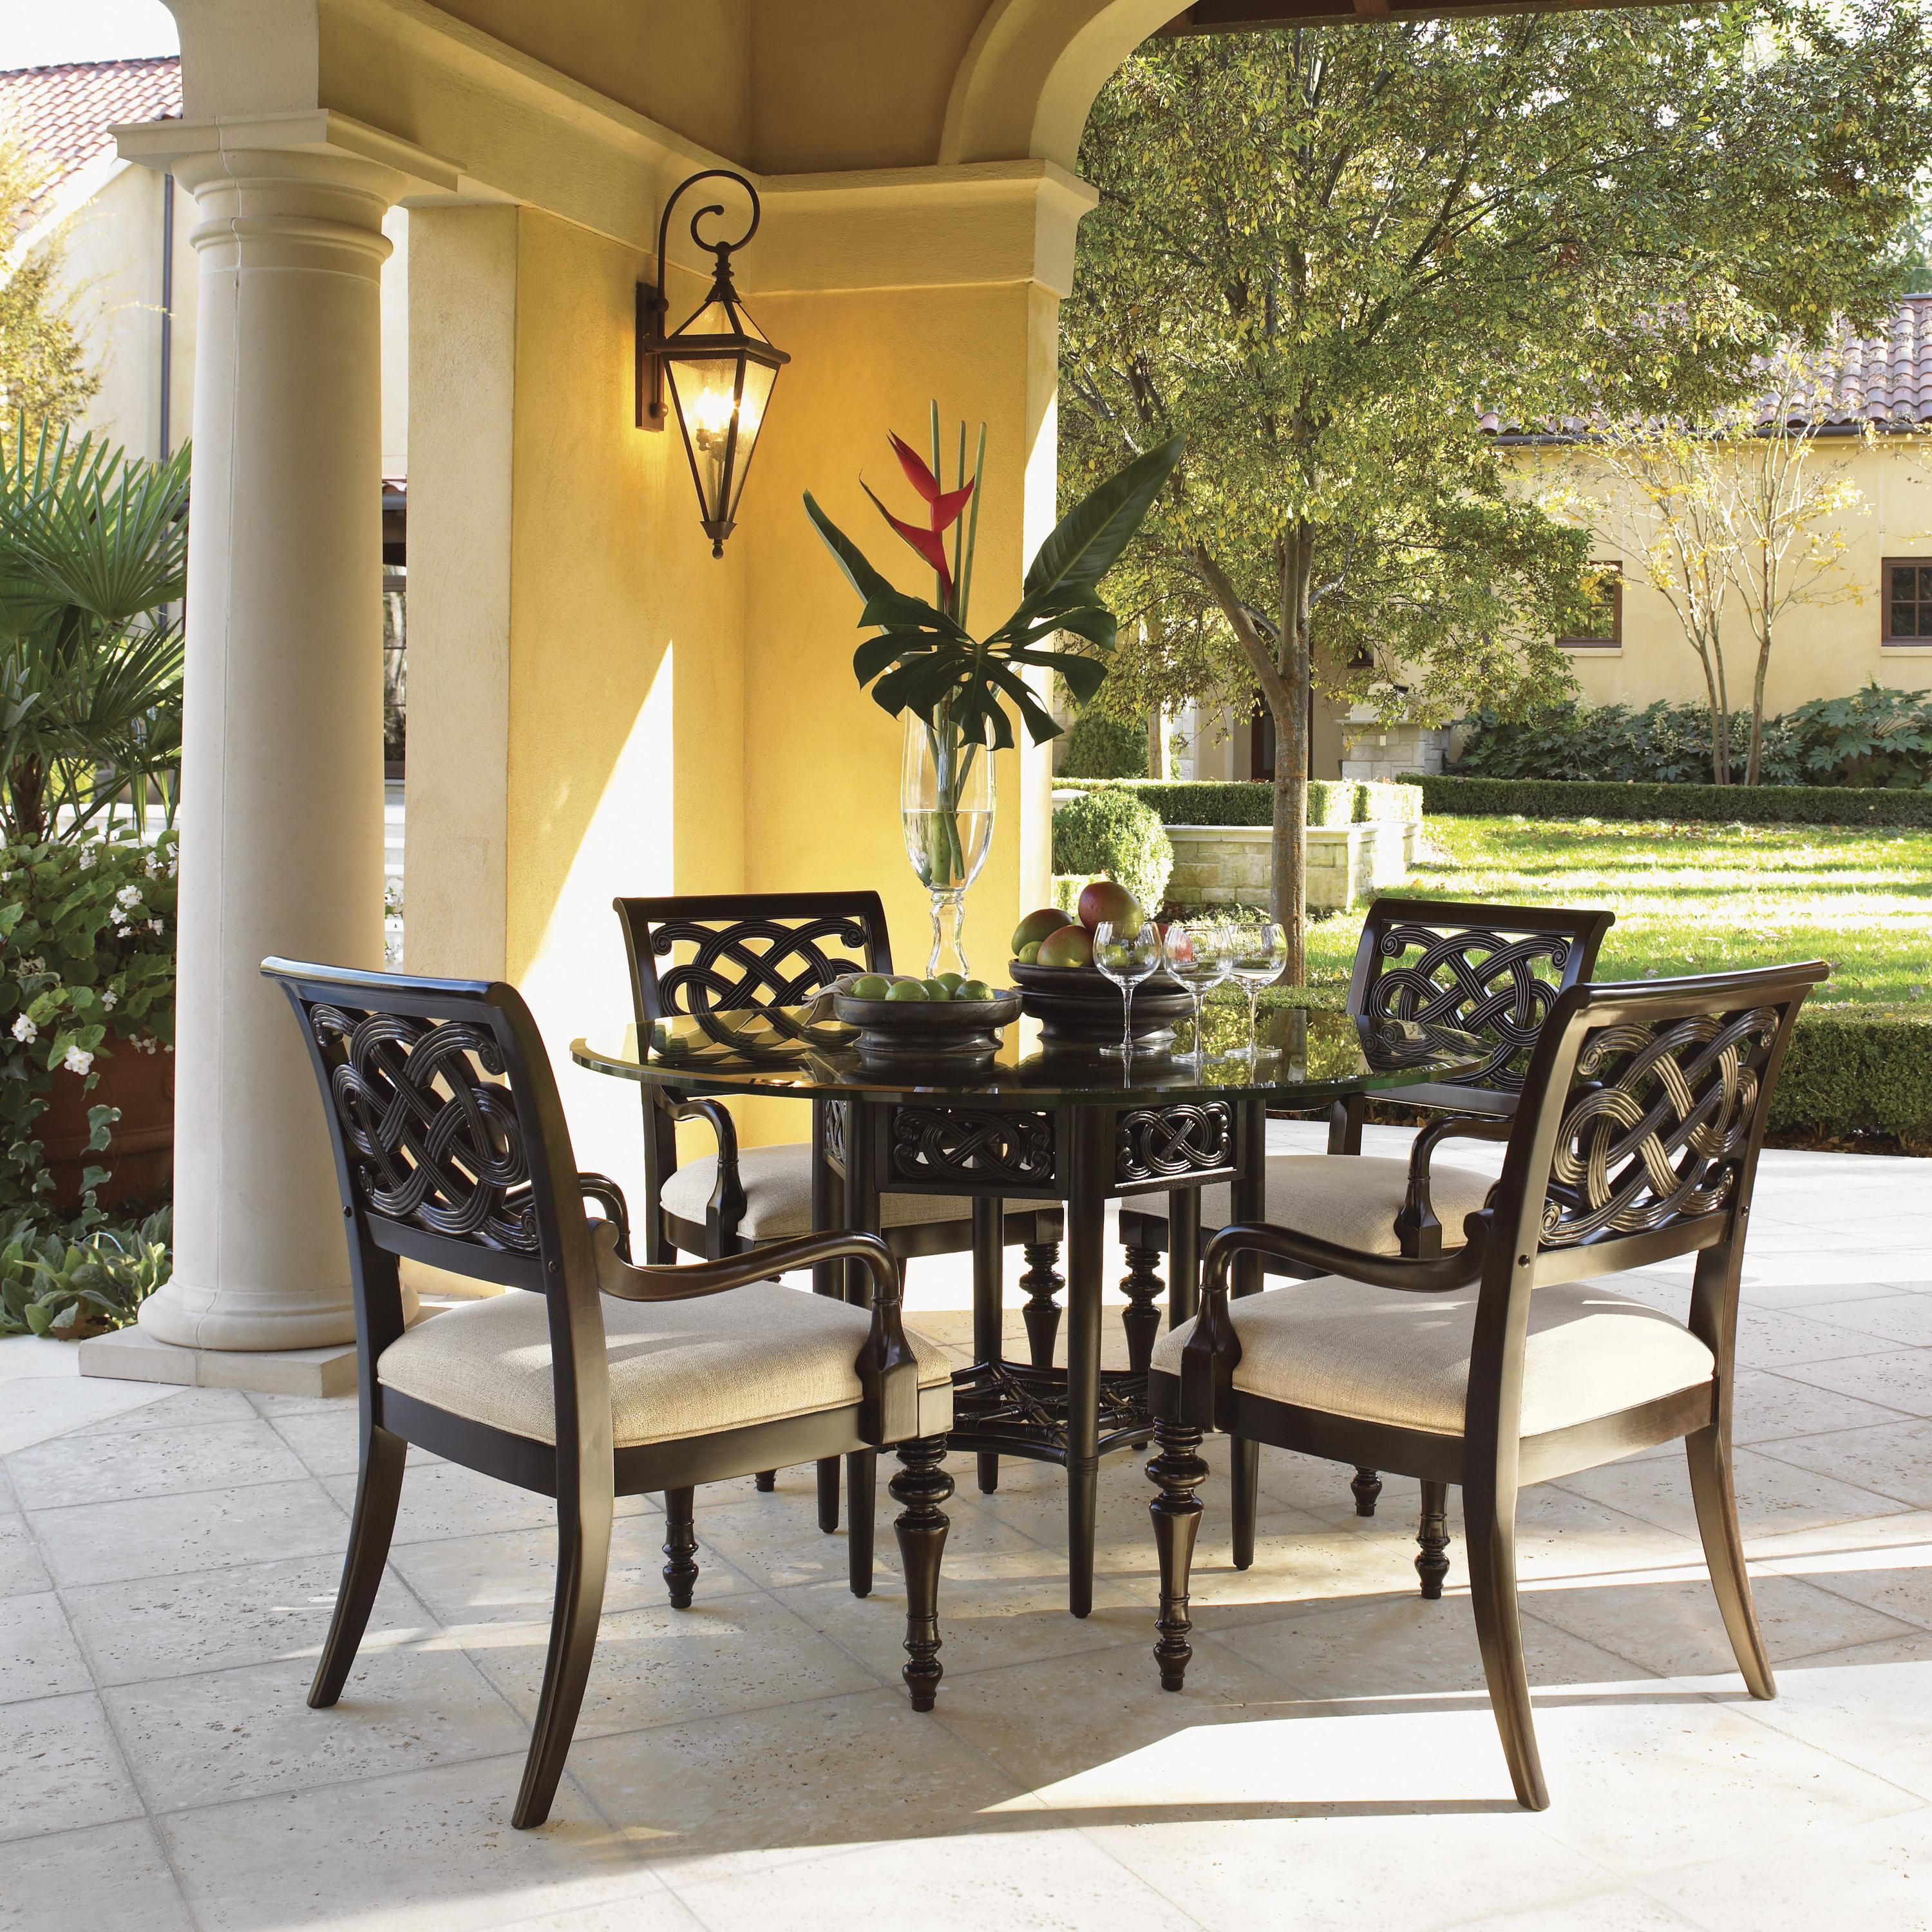 Royal Kahala (538) By Tommy Bahama Home  Baer's Furniture. Coastal Decorations. Globe Home Decor. Leather Living Room Chair. Nice Table Decoration. Rustic Dining Room Table And Chairs. Wall Art Ideas For Living Room. Used Waiting Room Chairs. How To Decorate My Living Room